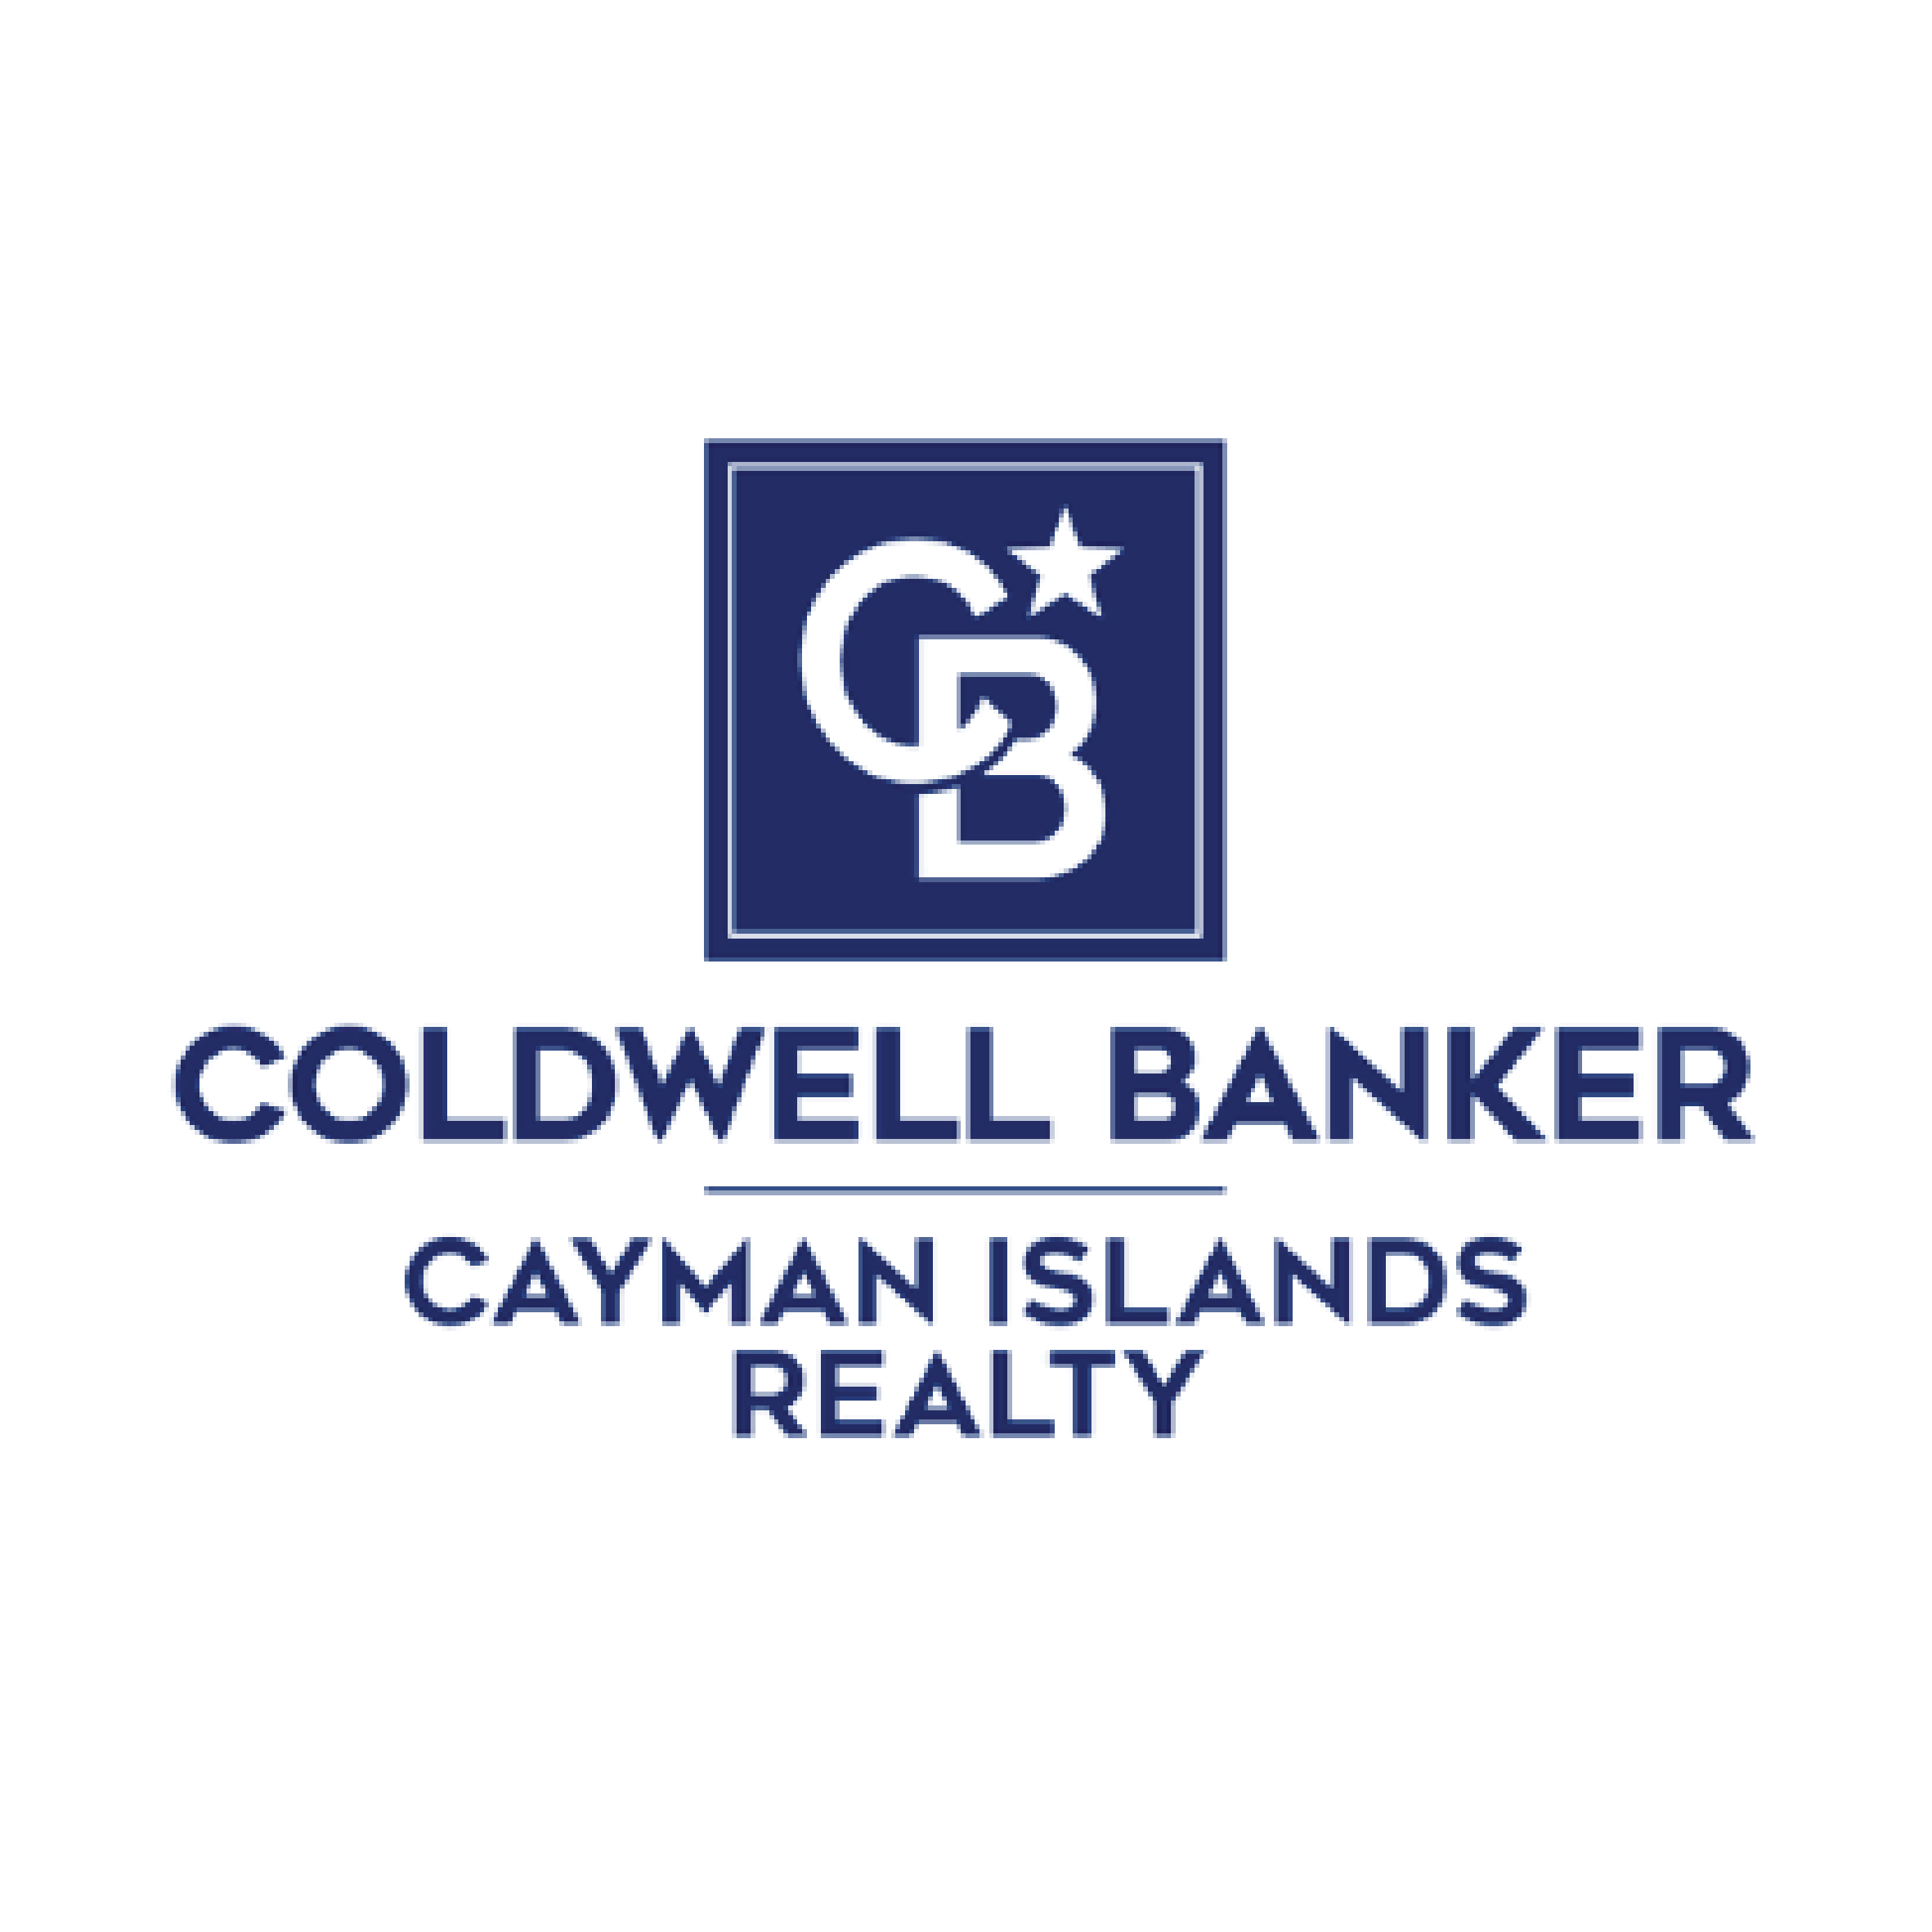 Coldwell Banker Cayman Islands Realty logo.